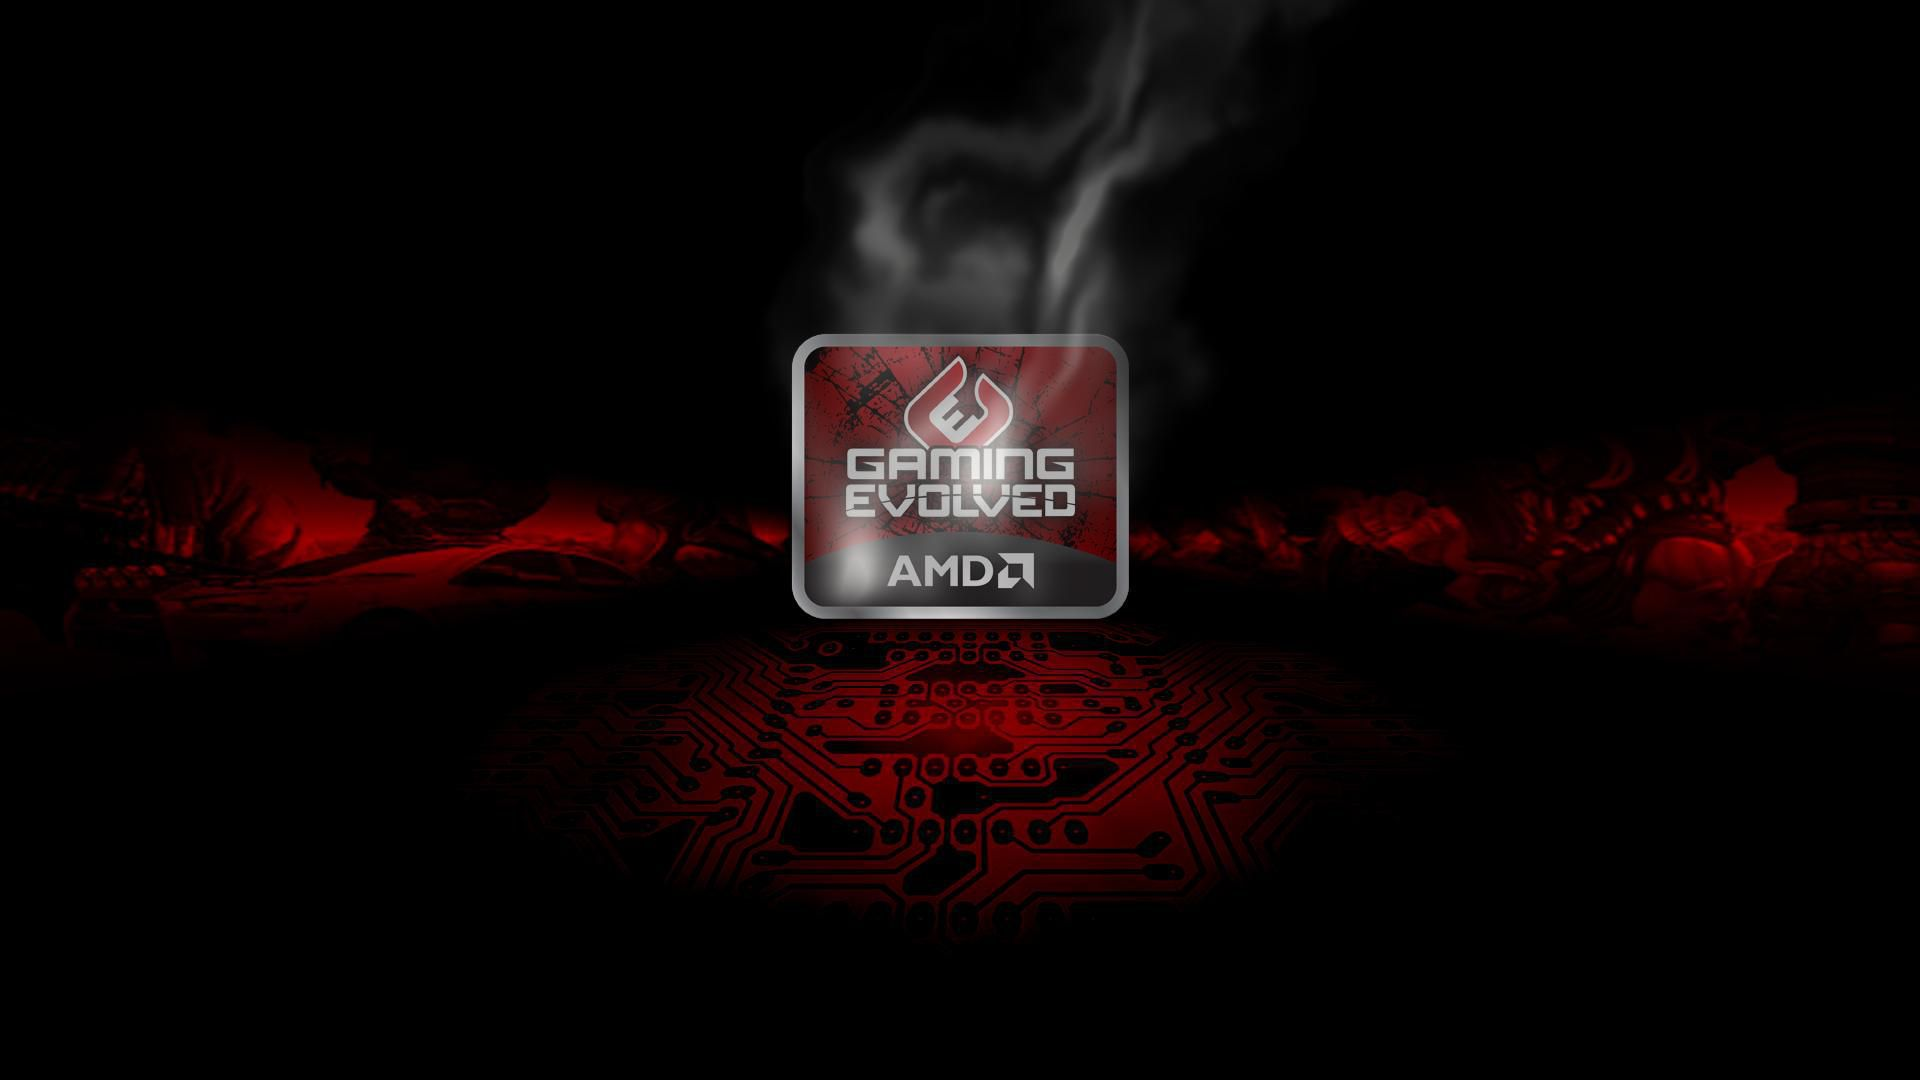 Amd Gaming Evolved Gallery